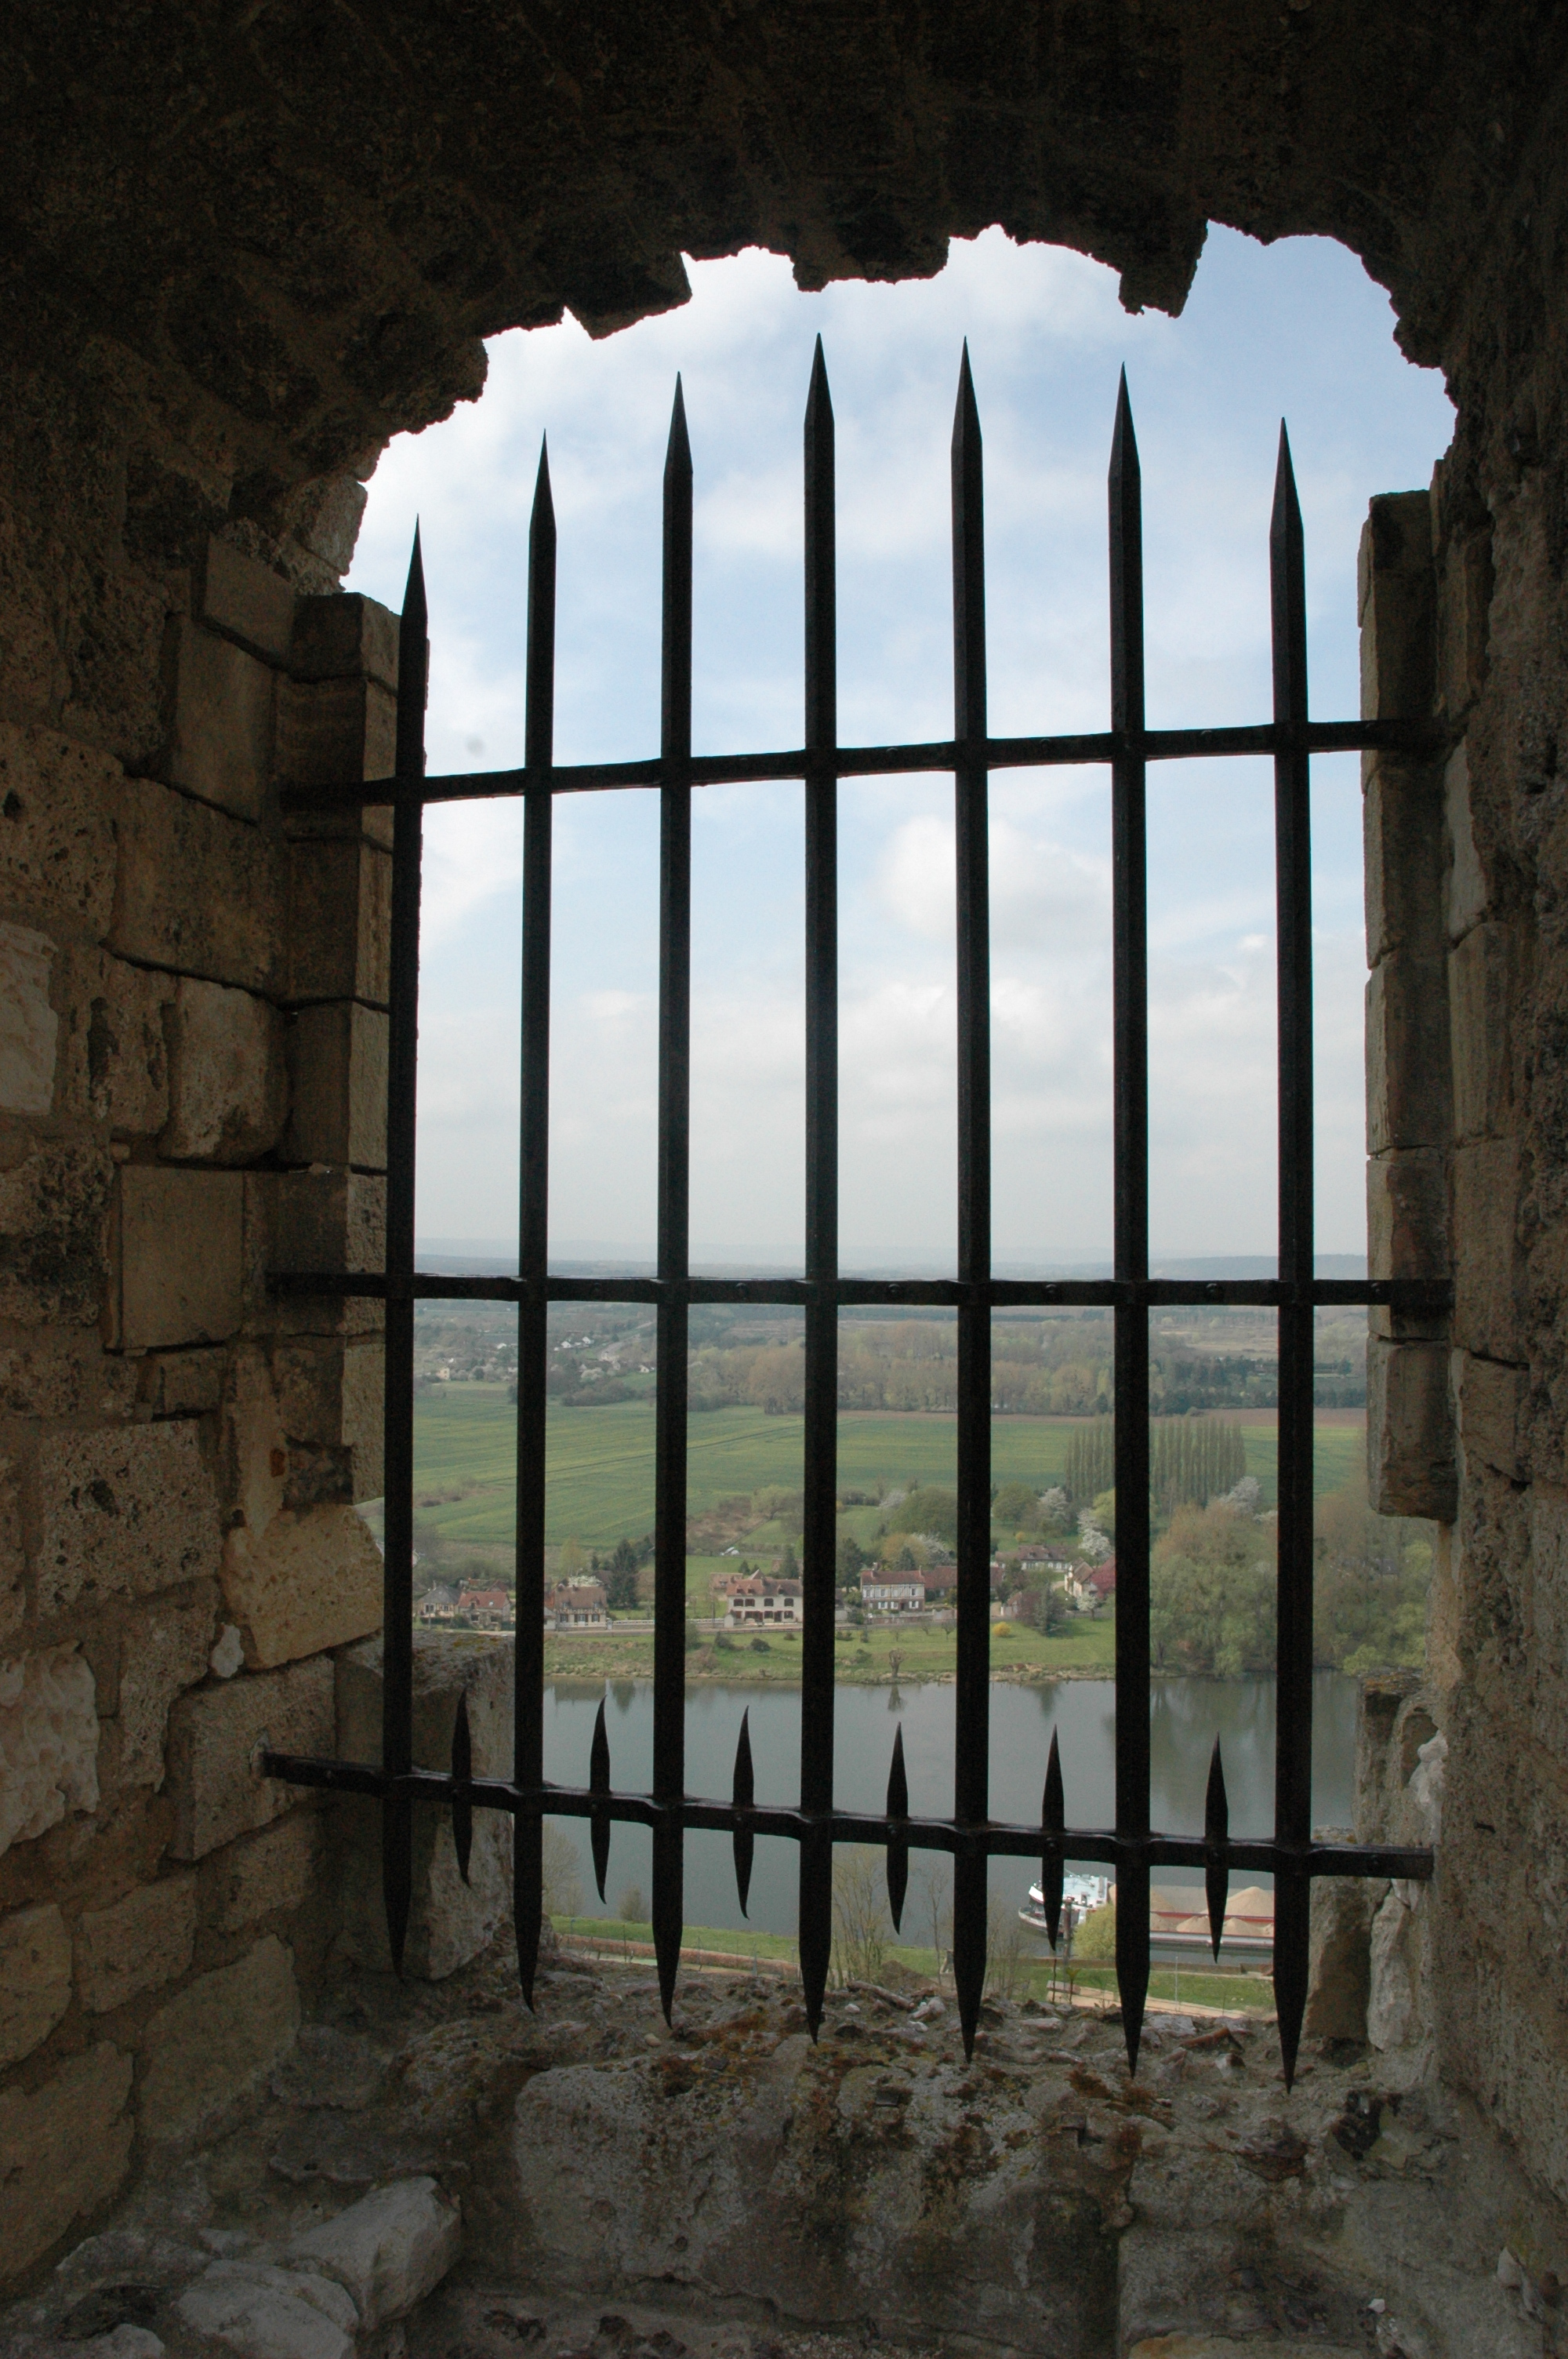 Through the castle window